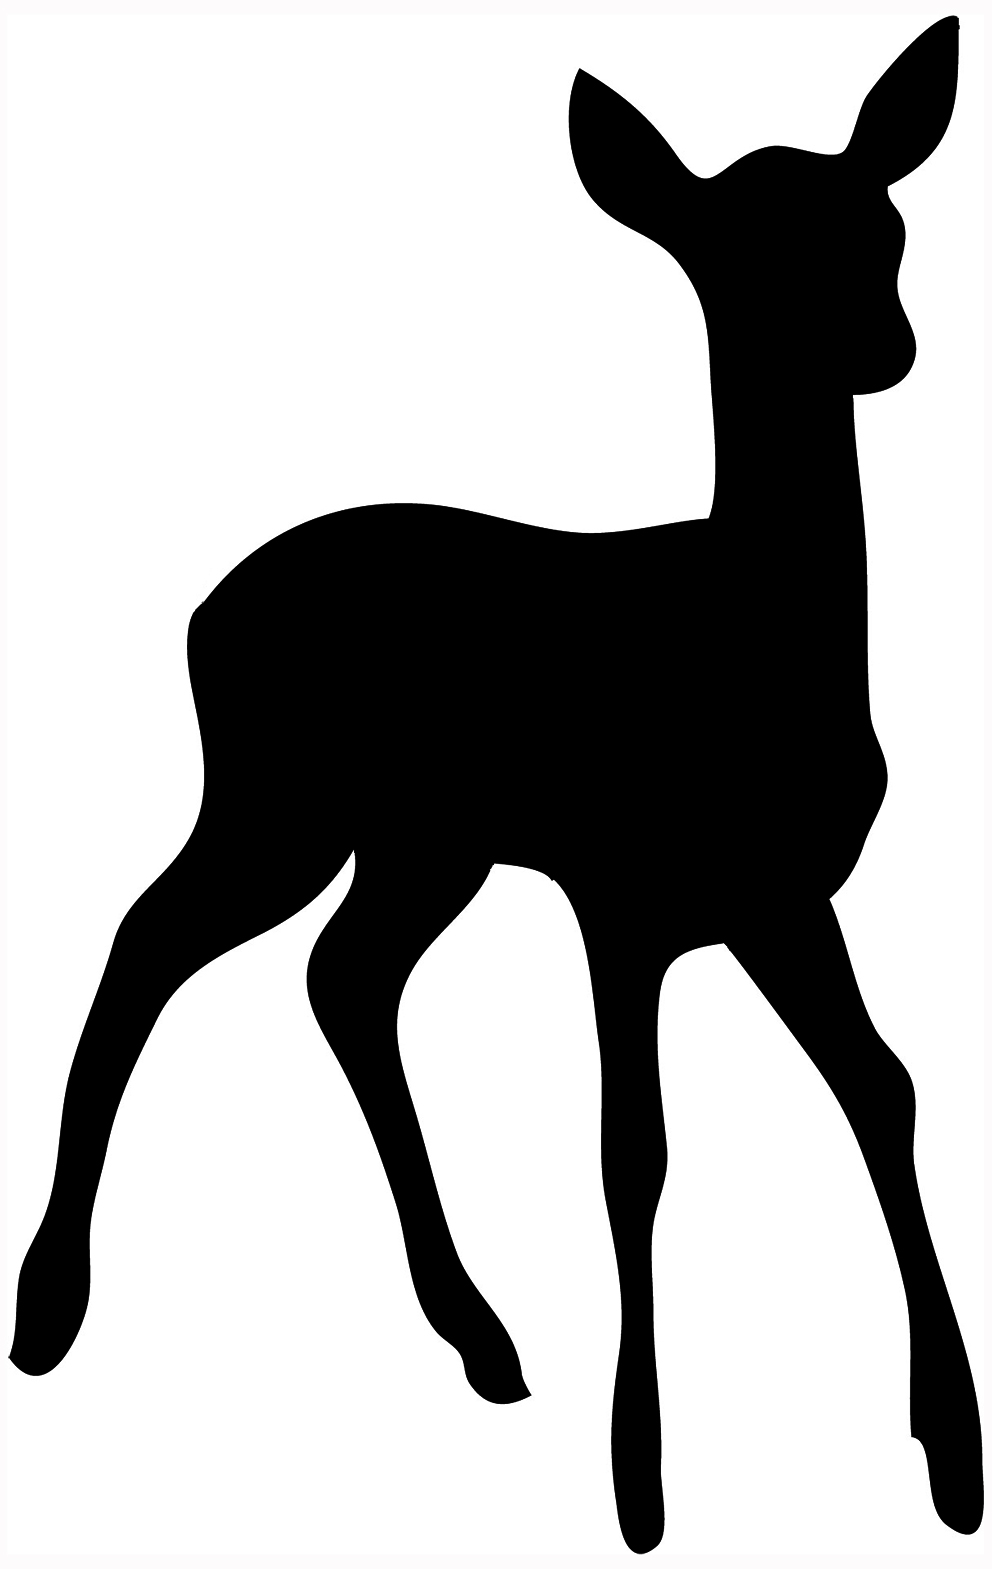 Animal Silhouettes Clipart - Cliparts.co